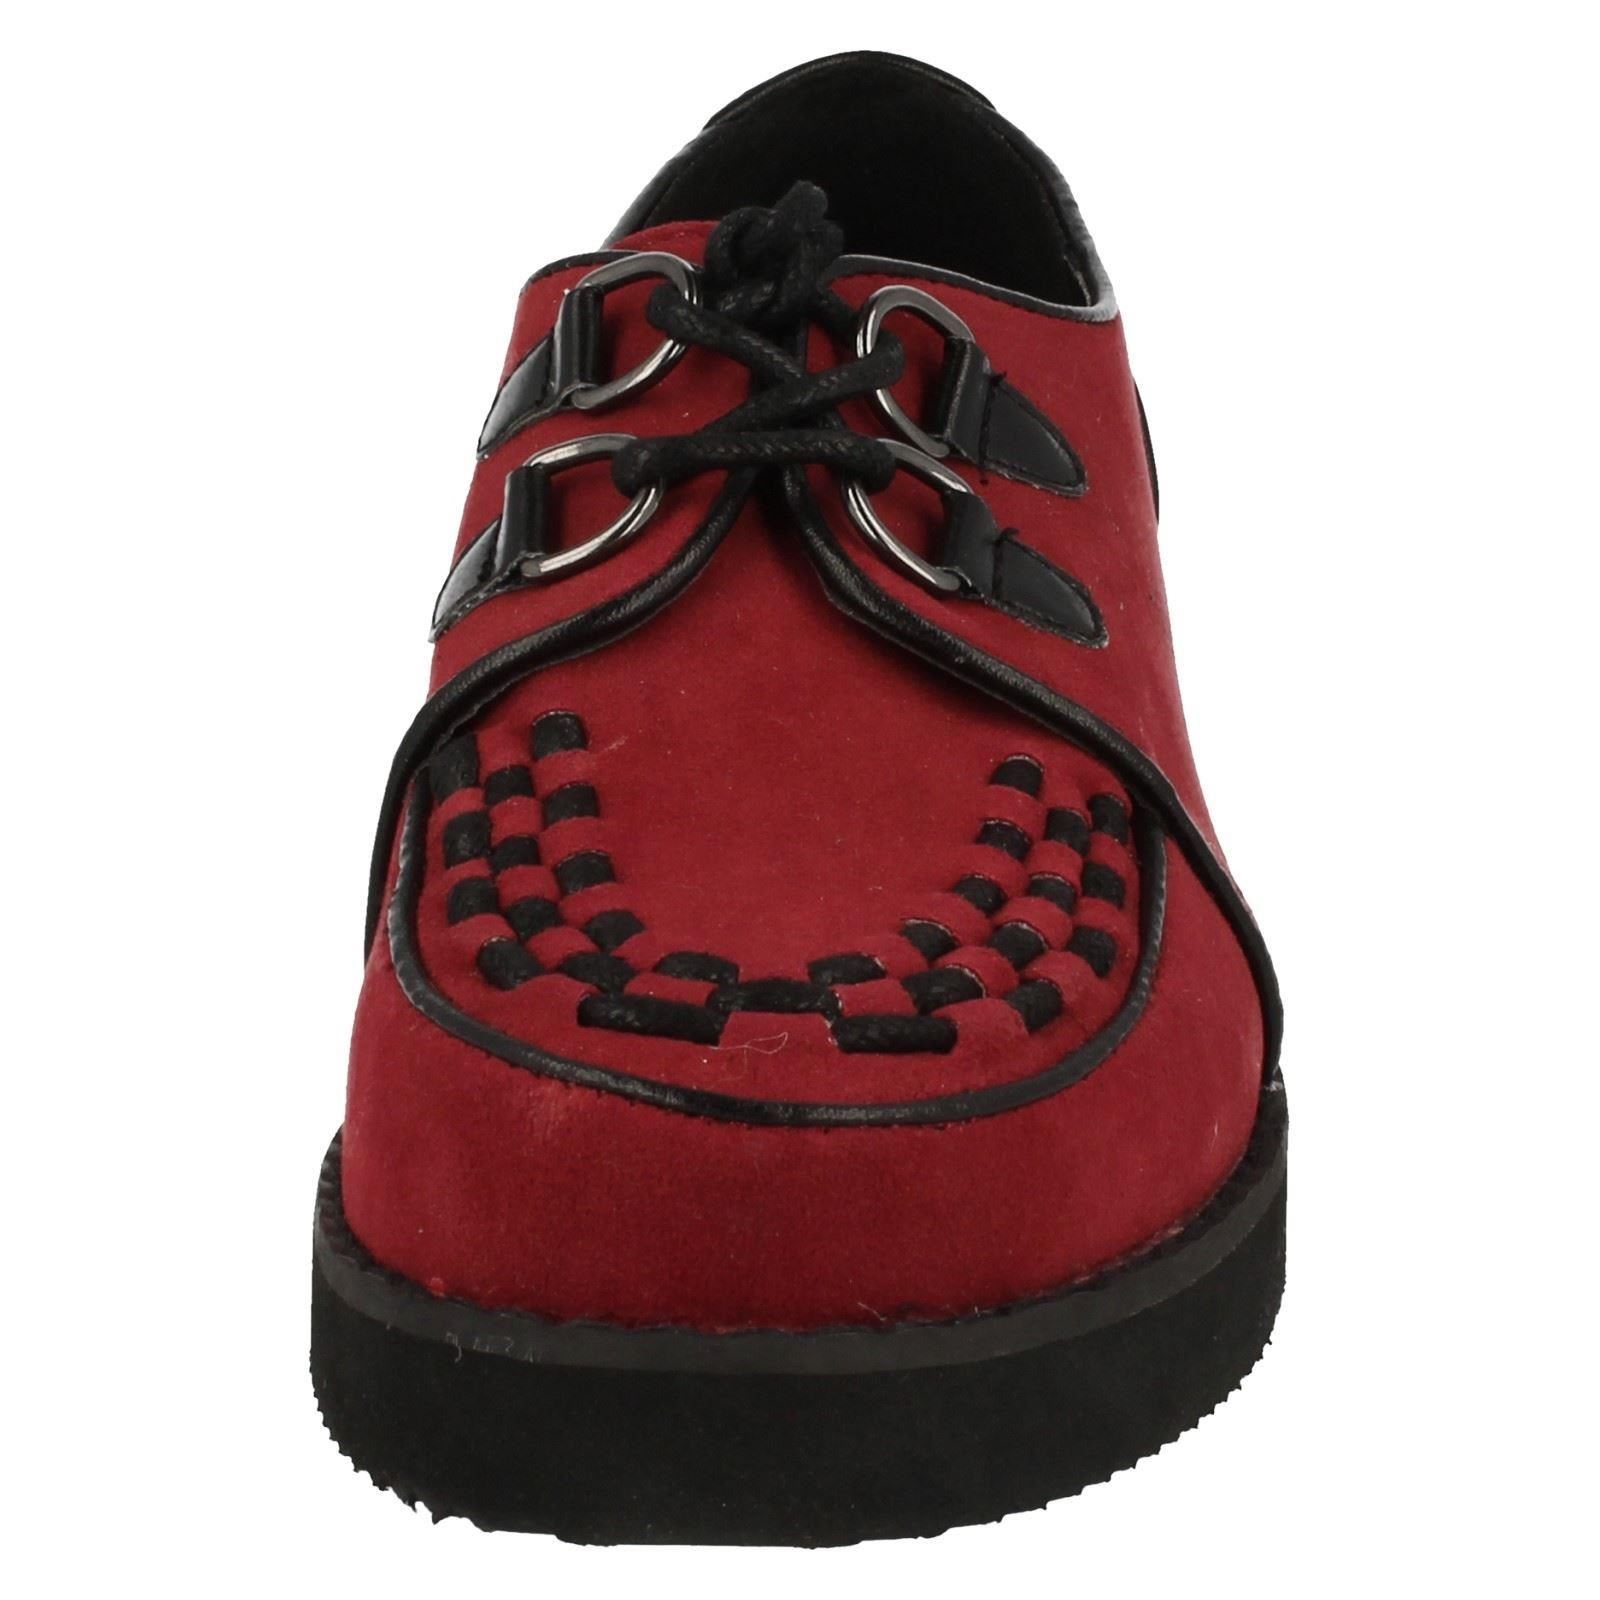 9c821274ee5 Ladies Spot on Chunky Sole Shoes F9568 Red UK 4 Standard